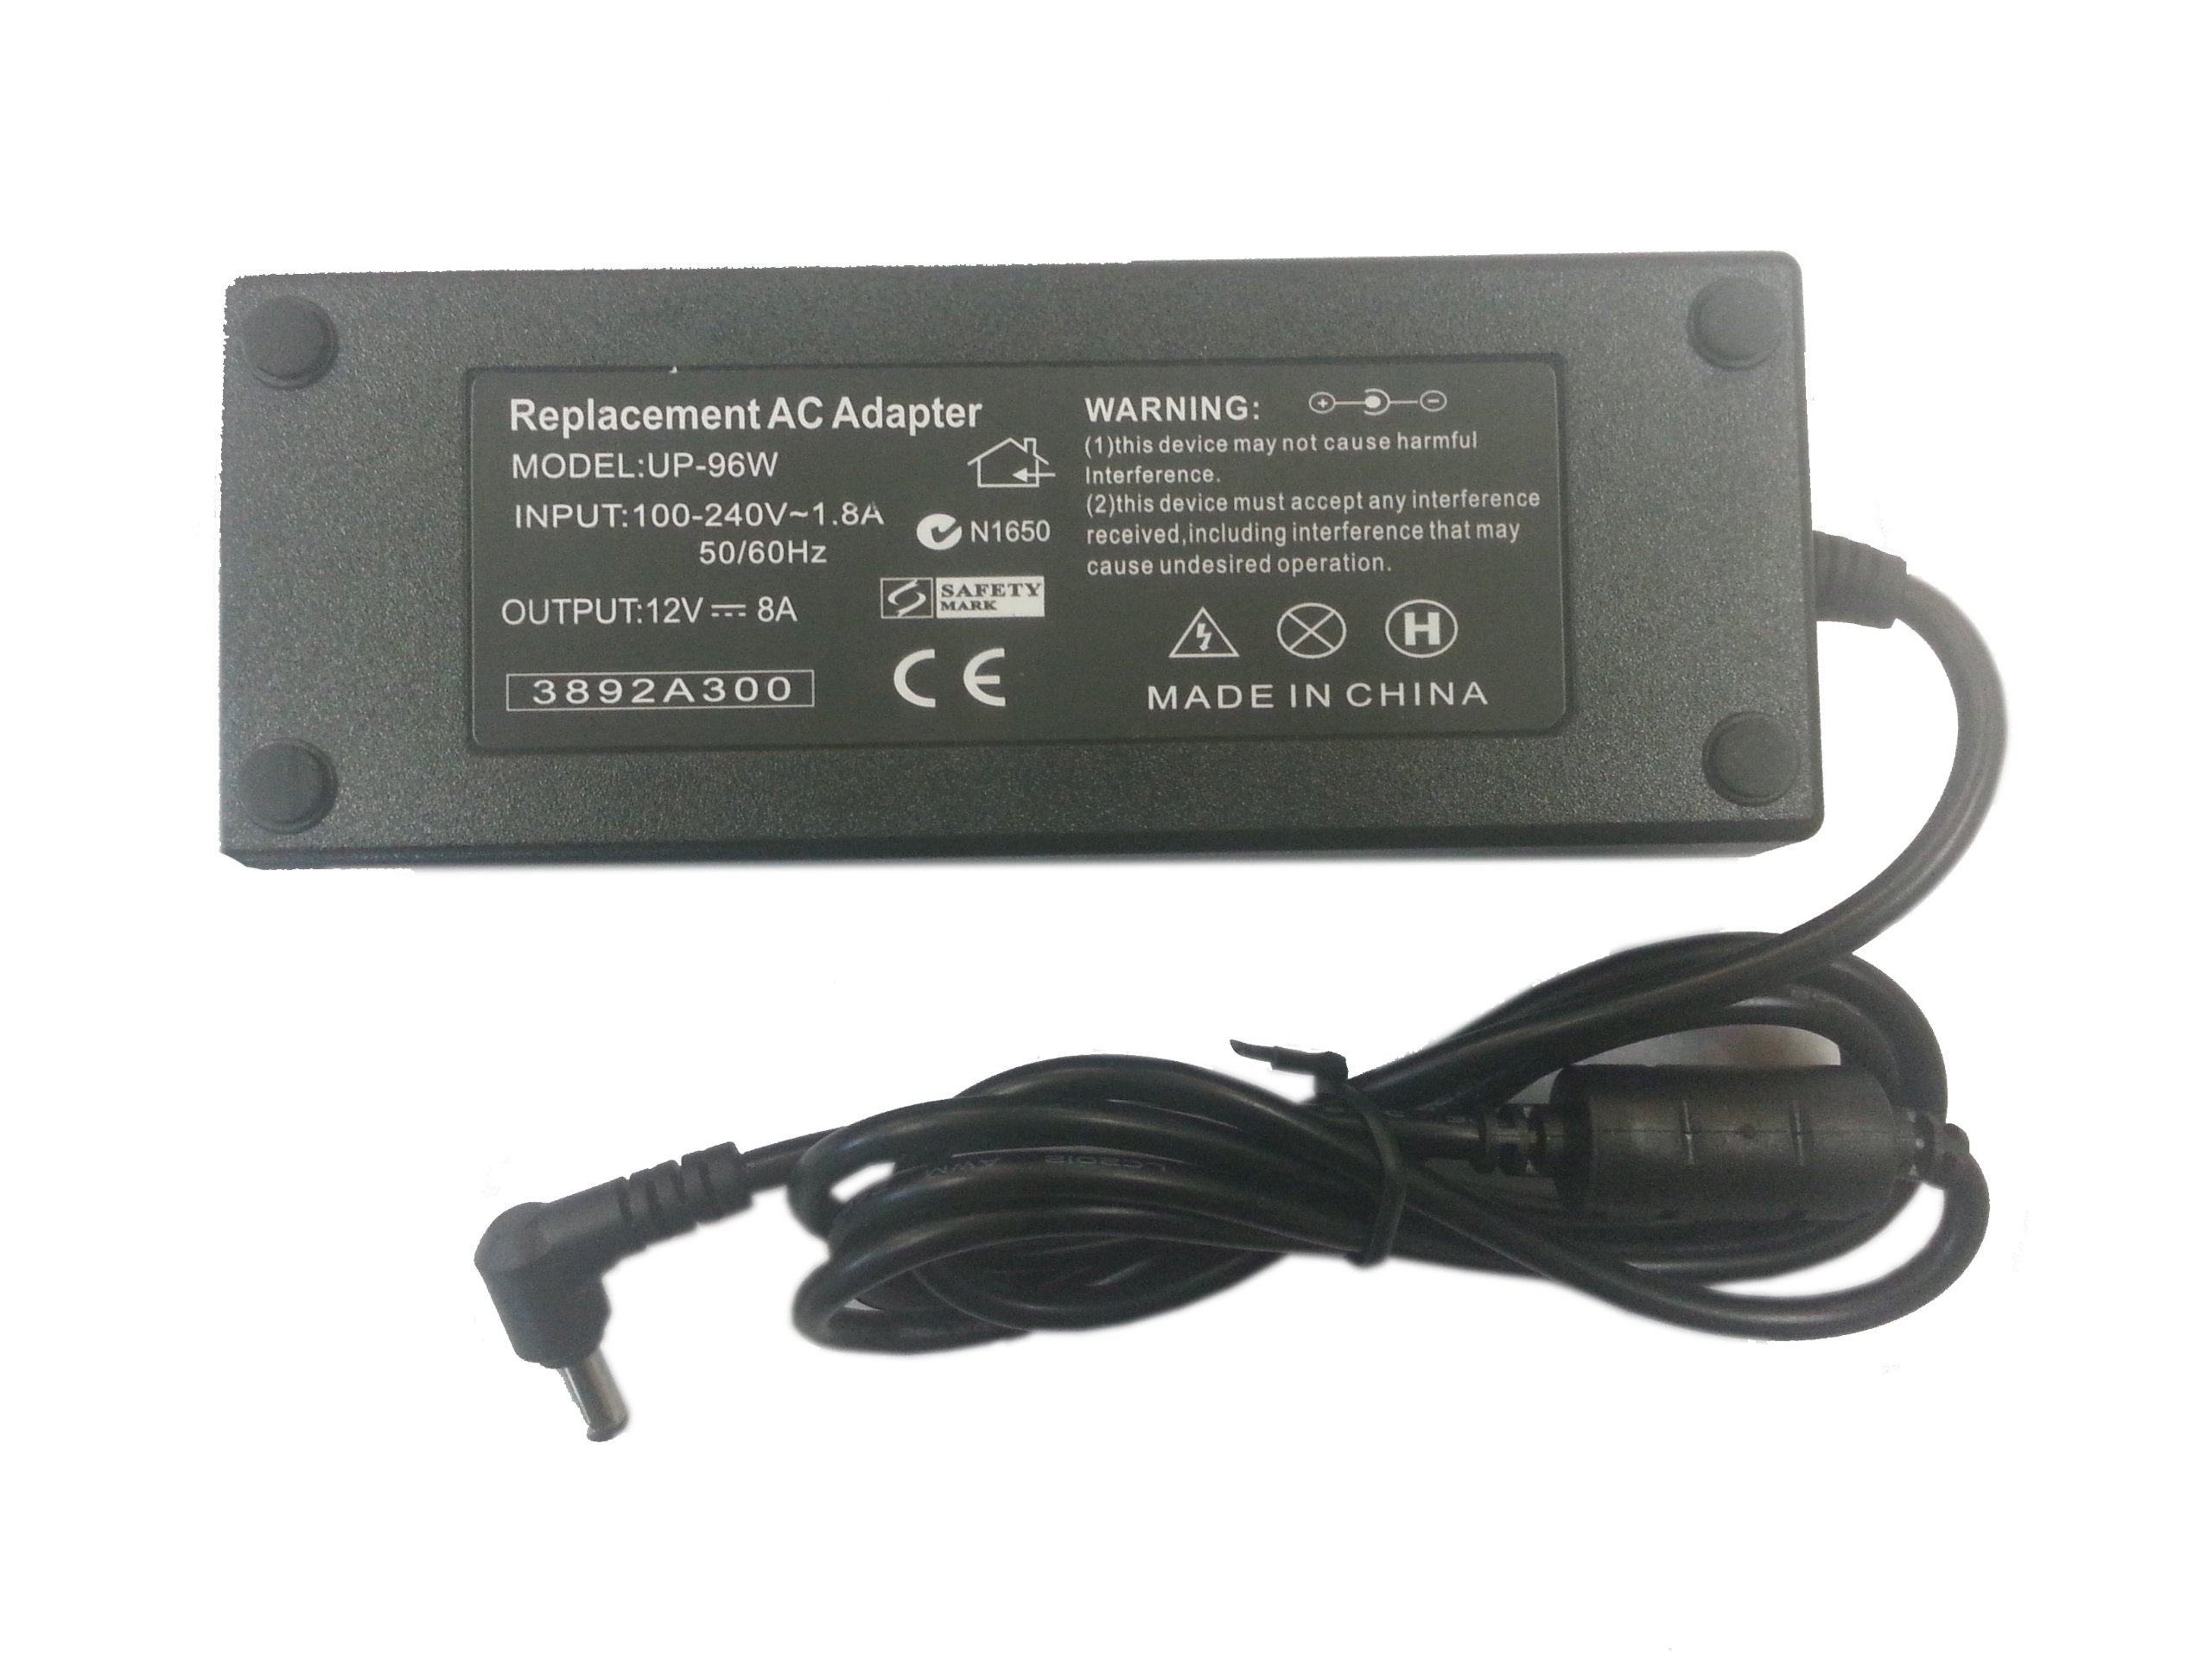 Autolizer US plug AC 100-240V To DC 12V 8A Power Supply Converter Adapter for 3528/5050 LED Lights Strips Wireless Router, ADSL Cats, HUB, Switches, Security Cameras, Audio/Video Power Supply, and many other applications